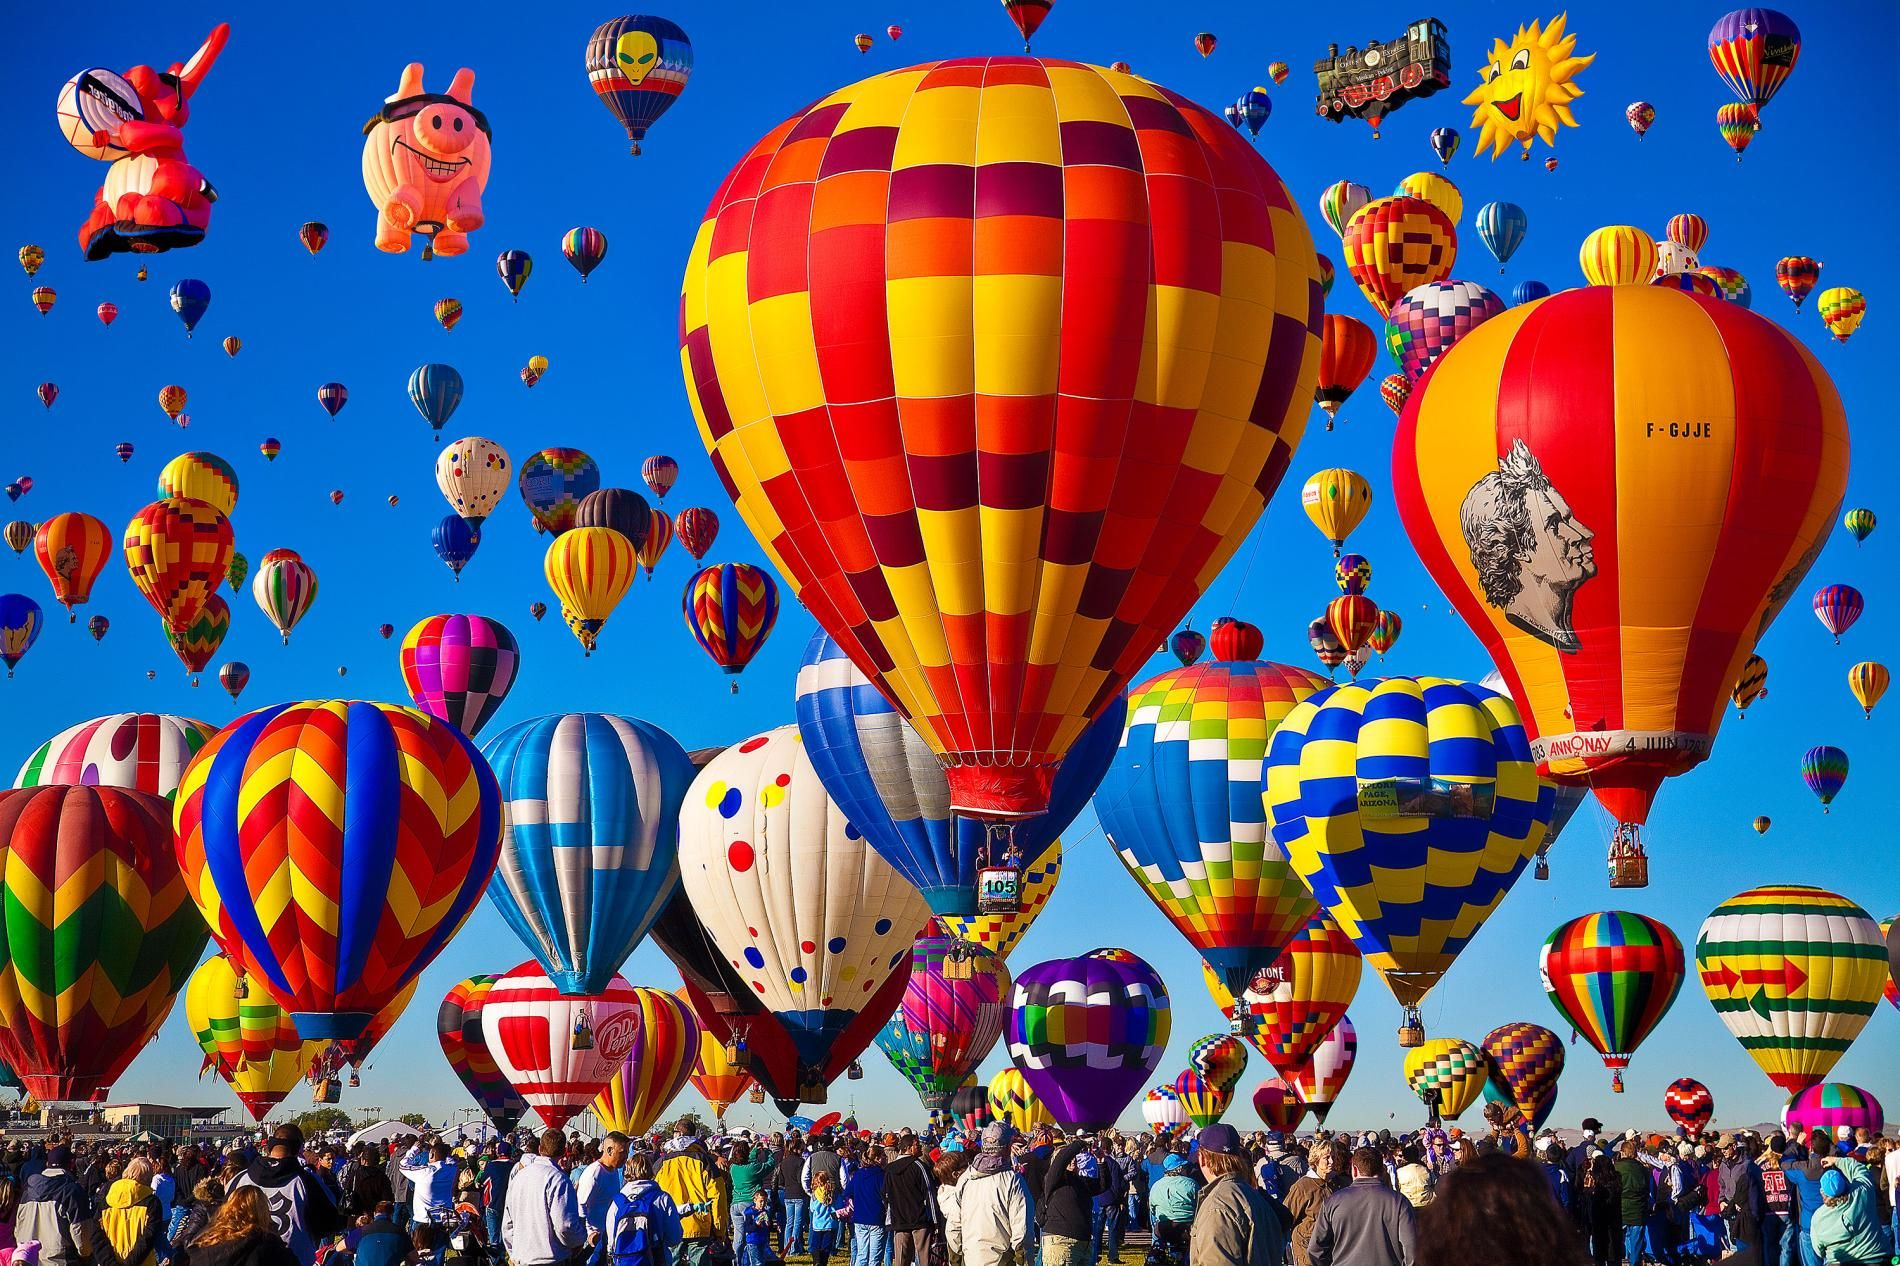 Every Year The Illuminating Glow Of Colorful Balloons Soar Over The Southwest Air Balloon Festival Hot Air Balloon Festival Albuquerque Balloon Festival